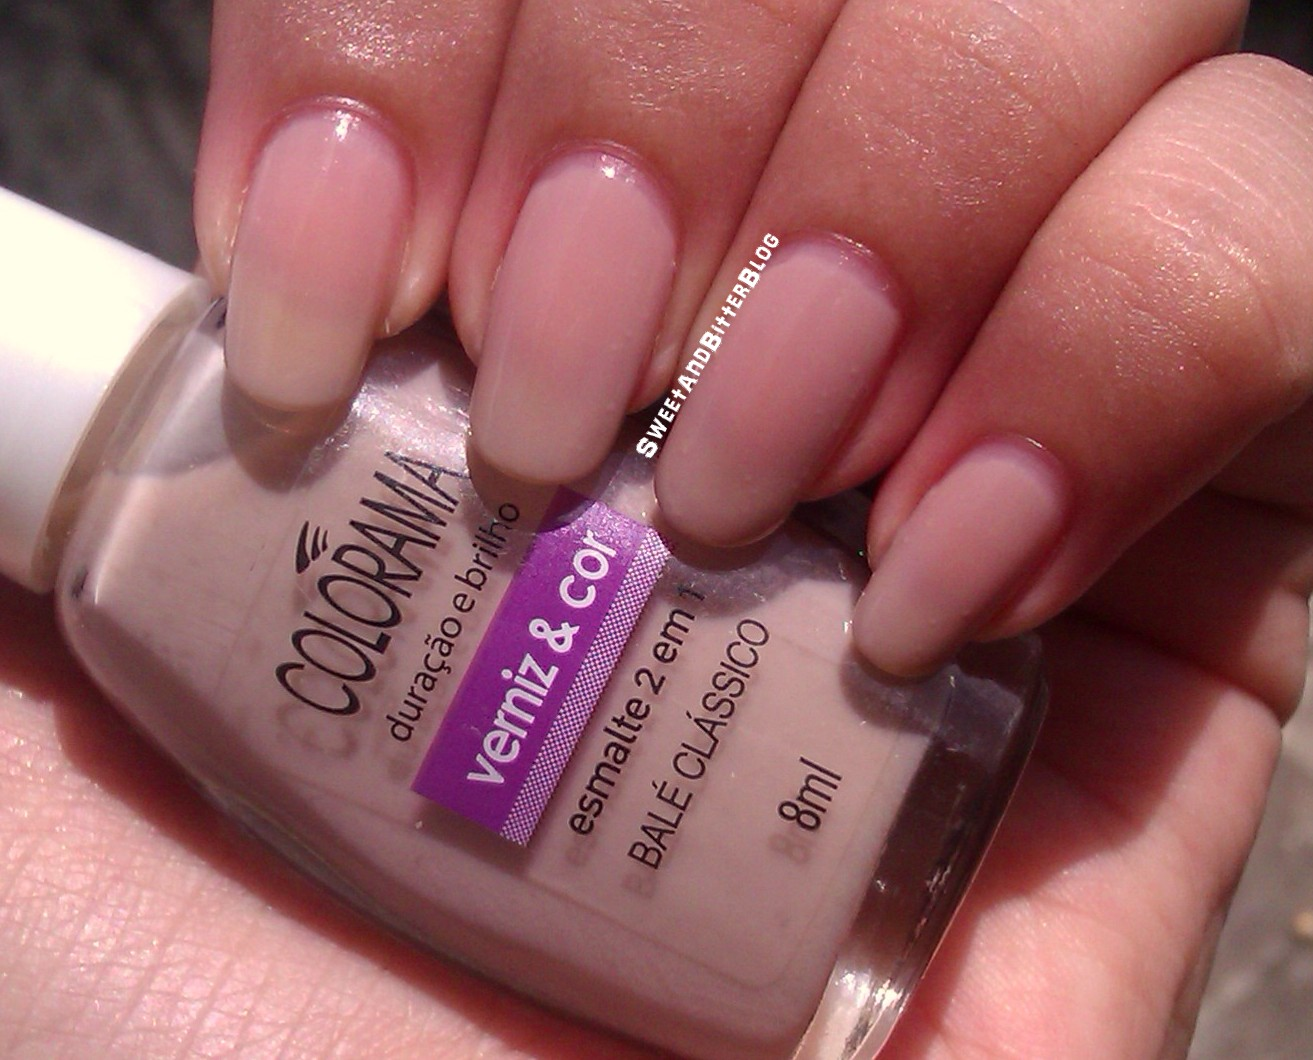 4 New Shades in Maybelline Colorama Nail Polish Swatch ...